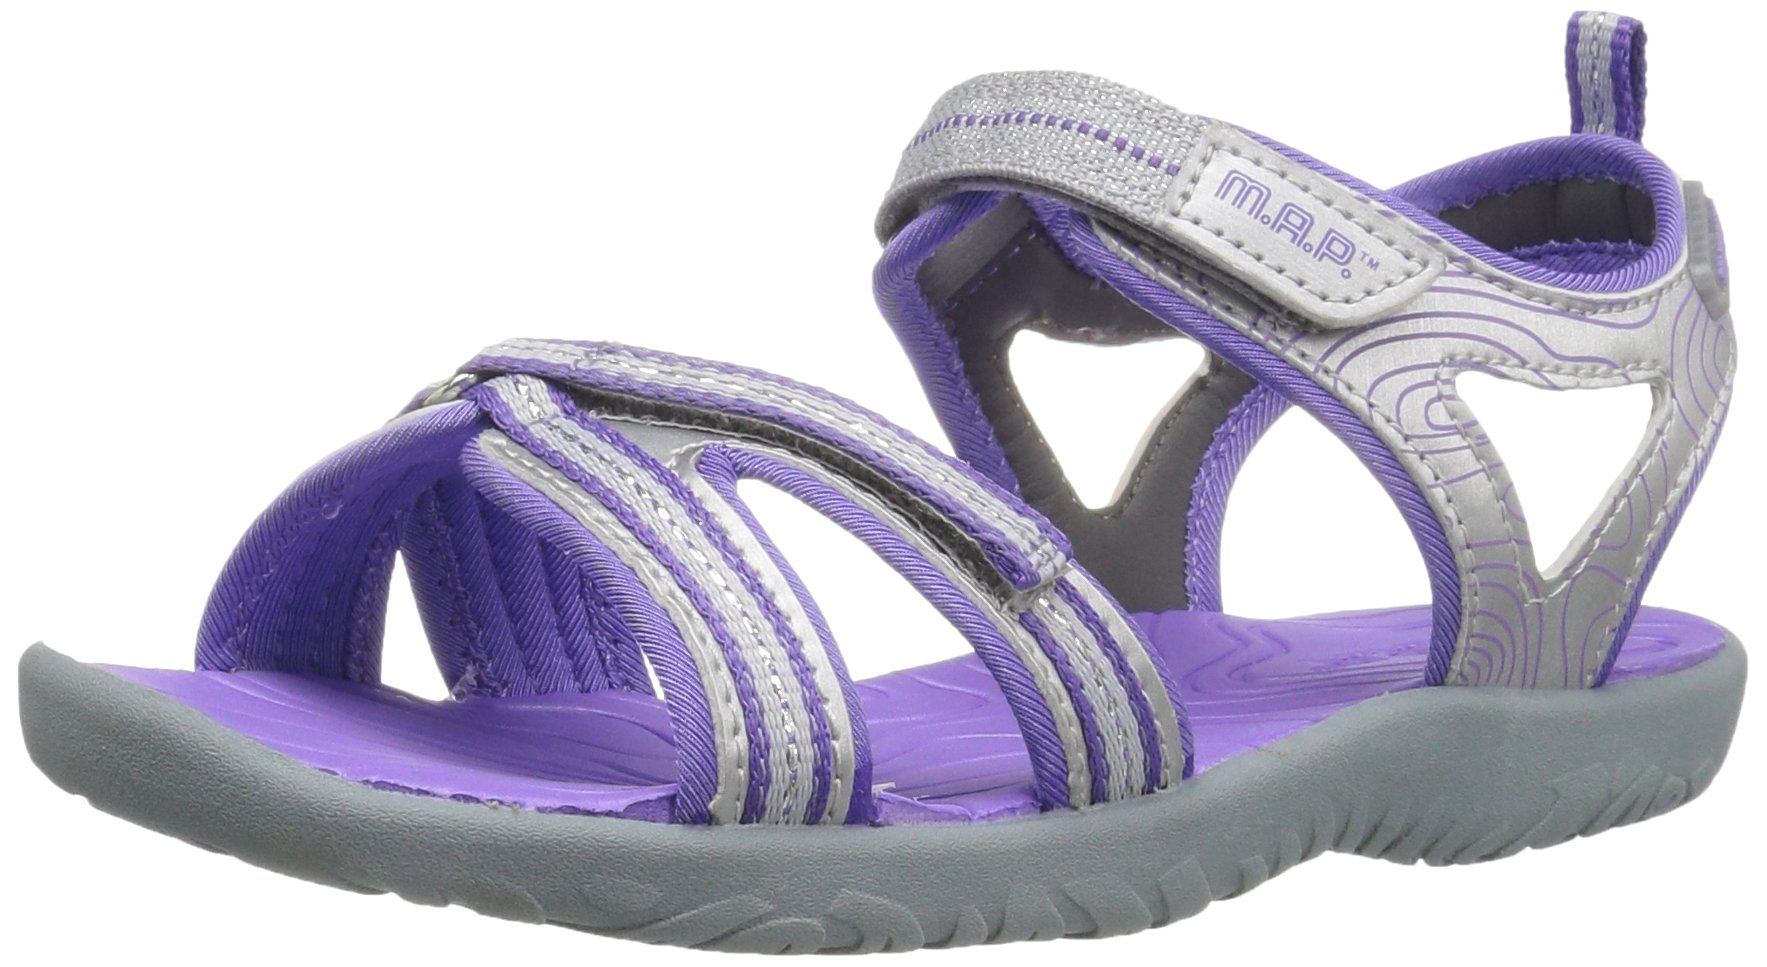 M.A.P. Lorna Girl's Outdoor Sandal, Silver/Purple, 2 M US Little Kid by M.A.P. (Image #1)